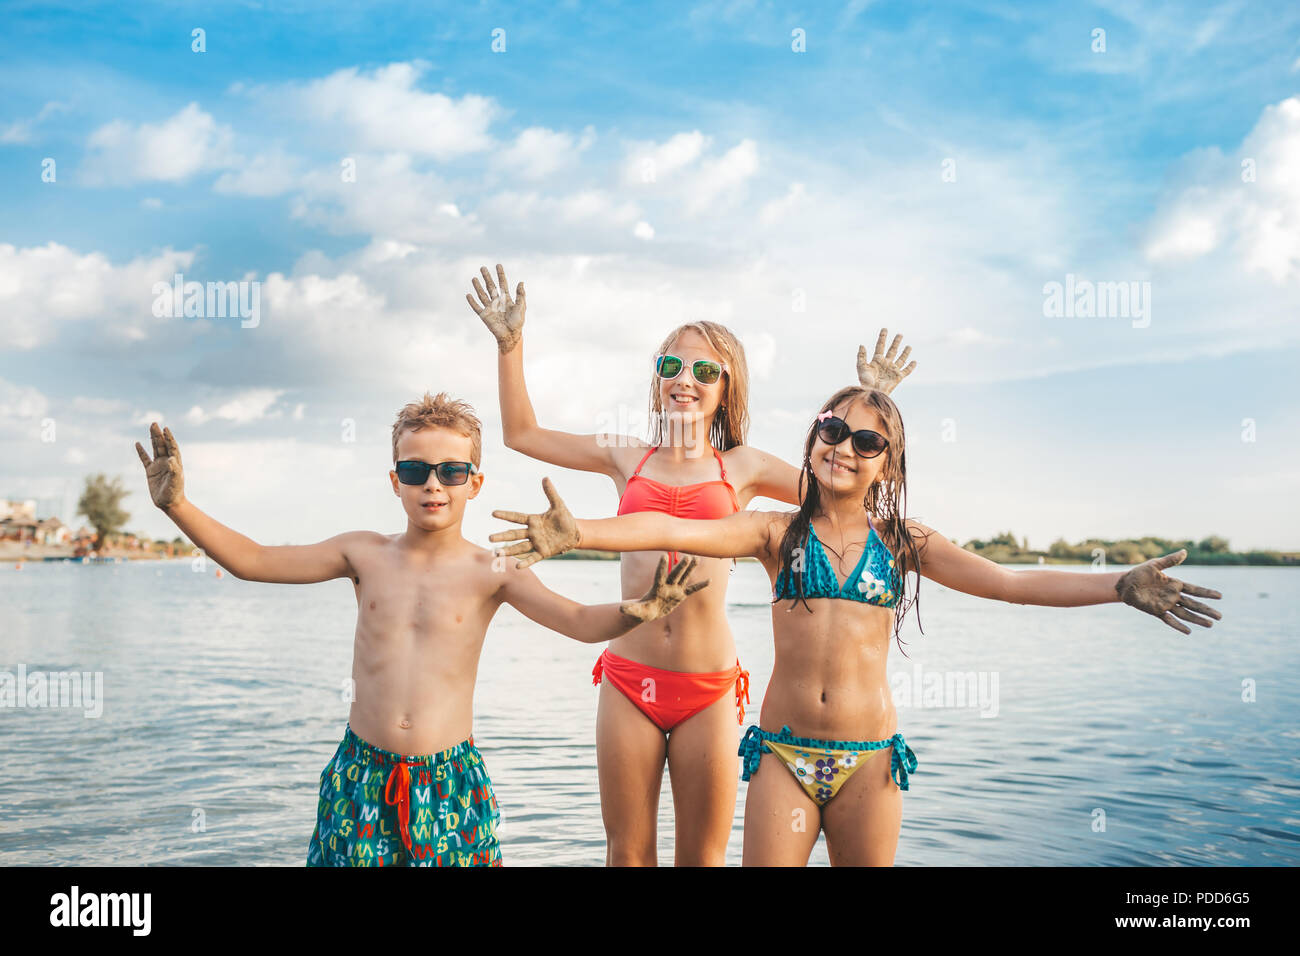 Happy children playing in the sea. Kids having fun outdoors  while spreading their hands and looking at the camera. Summer vacation and healthy lifest - Stock Image